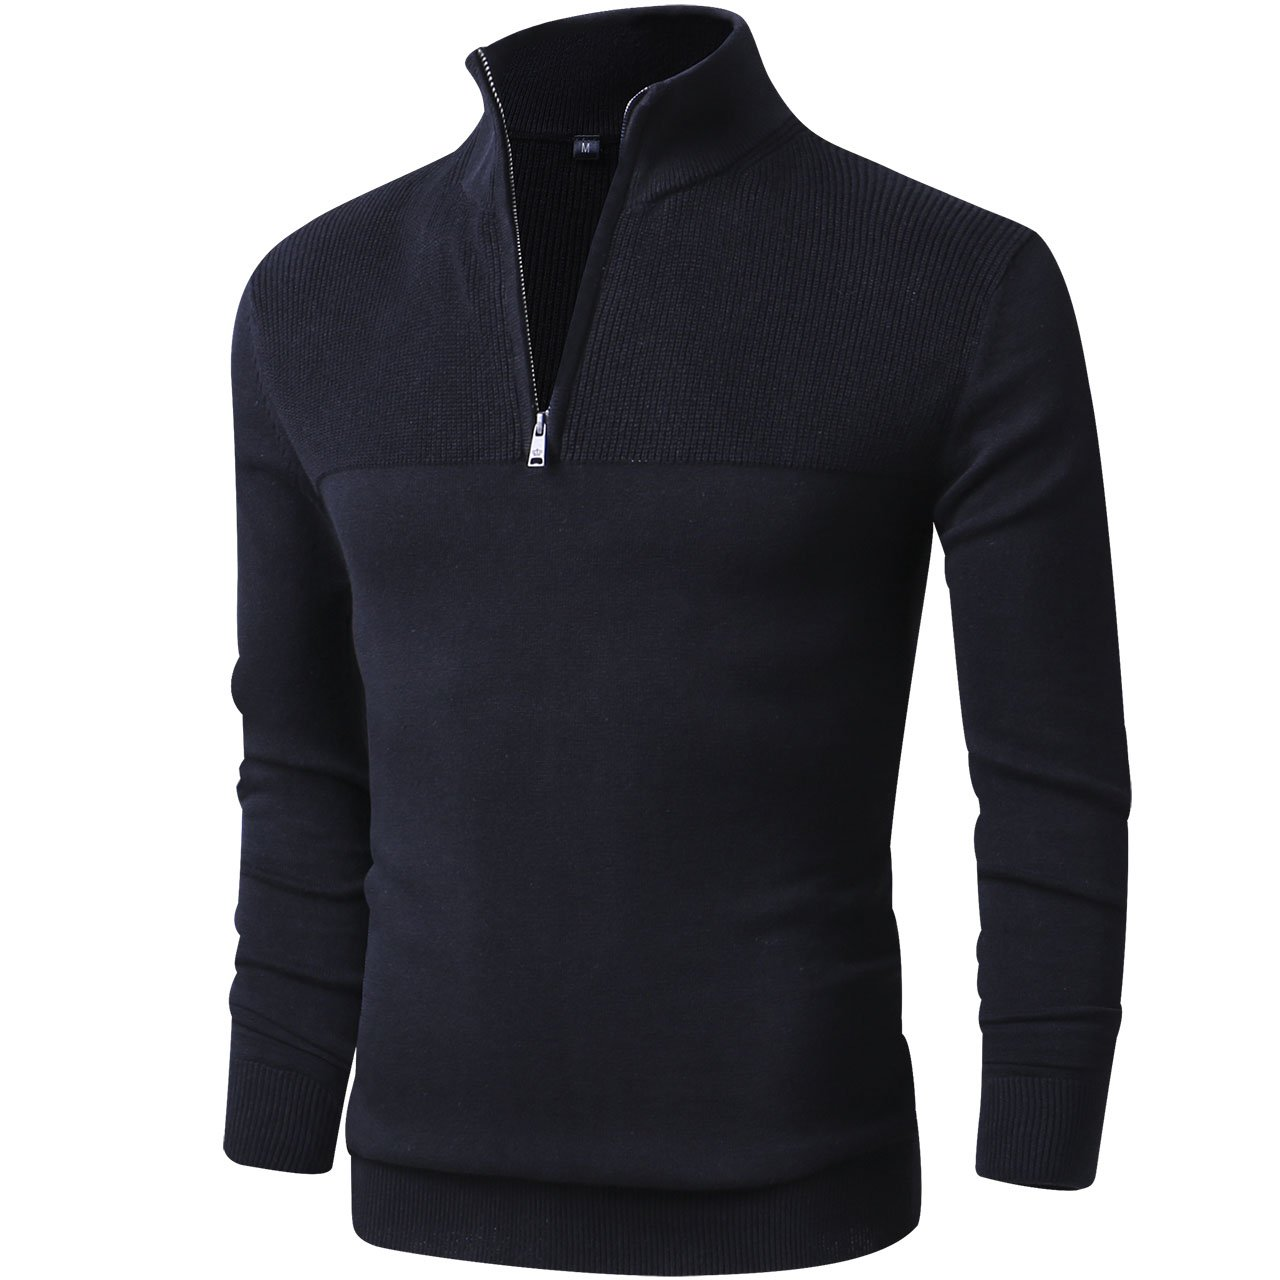 LTIFONE Mens Slim Fit Zip up Mock Neck Polo Sweater Casual Long Sleeve Sweater Pullover Sweaters Ribbing Edge(Black,3XL